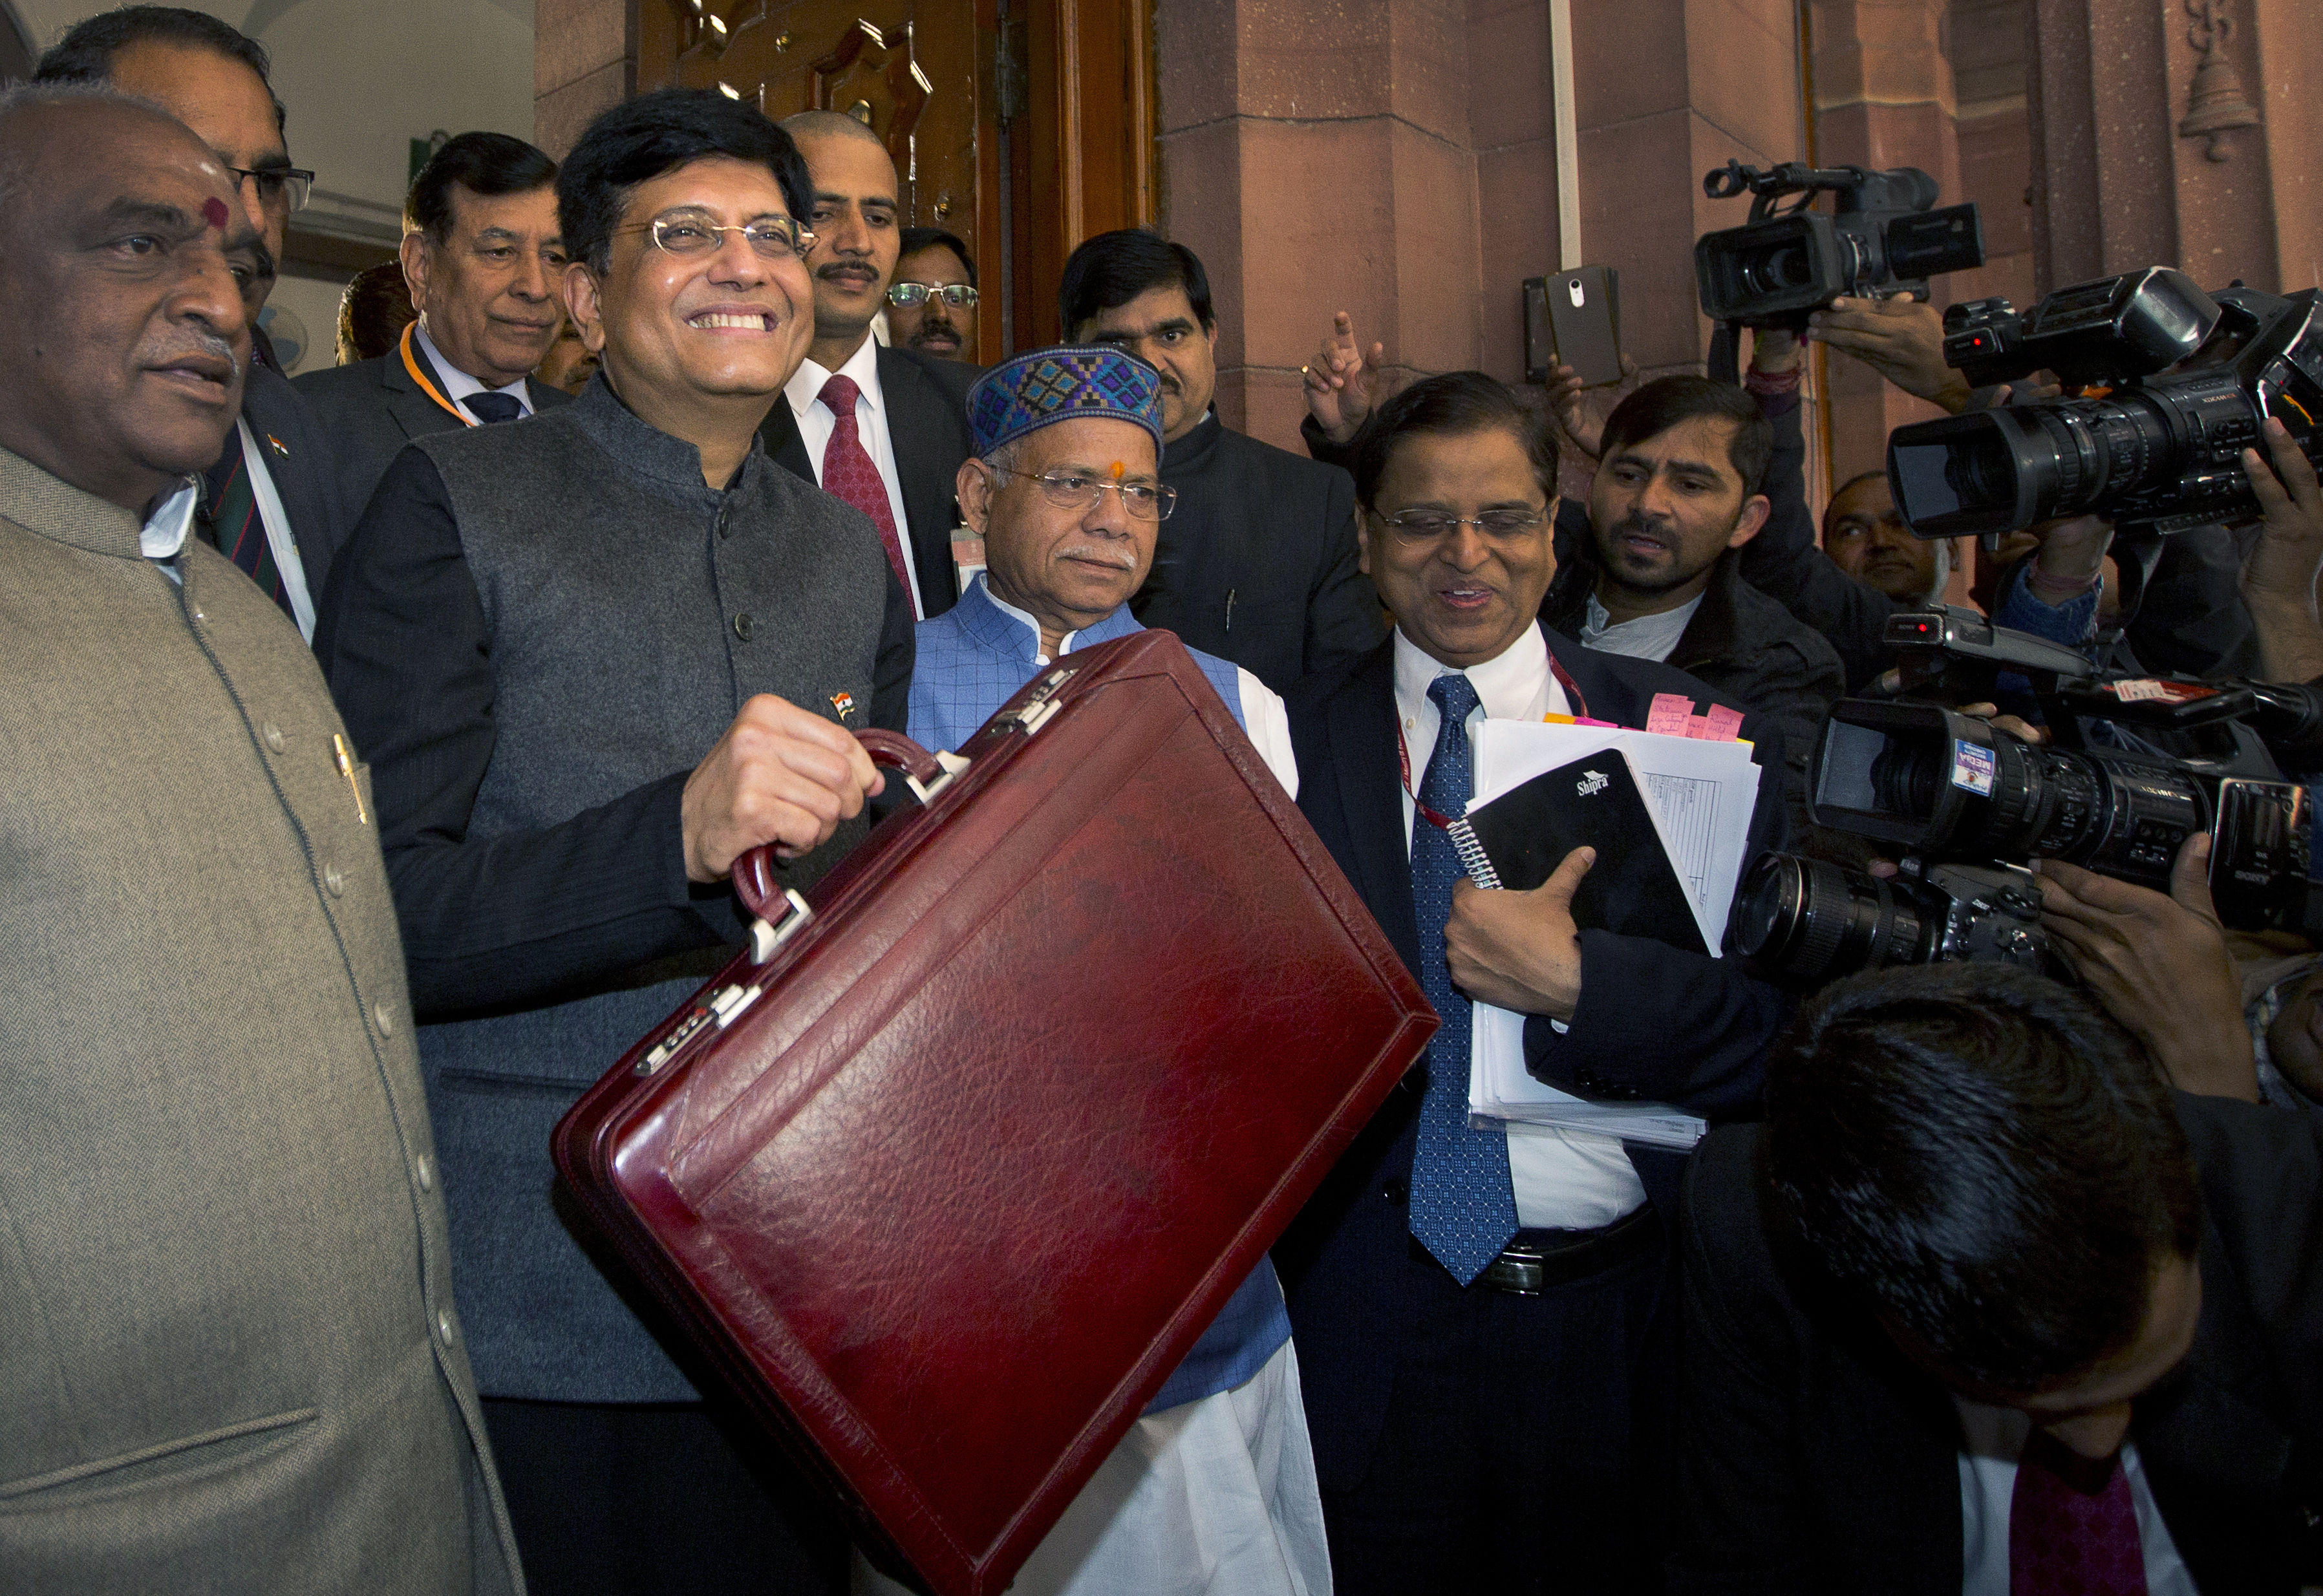 Interim Finance Minister Piyush Goyal, center, holds a briefcase containing federal budget documents with Junior Finance ministers Shiv Pratap Shukla, center right, and Pon Radhakrishnan, left, upon their arrival at the parliament house in New Delhi,...